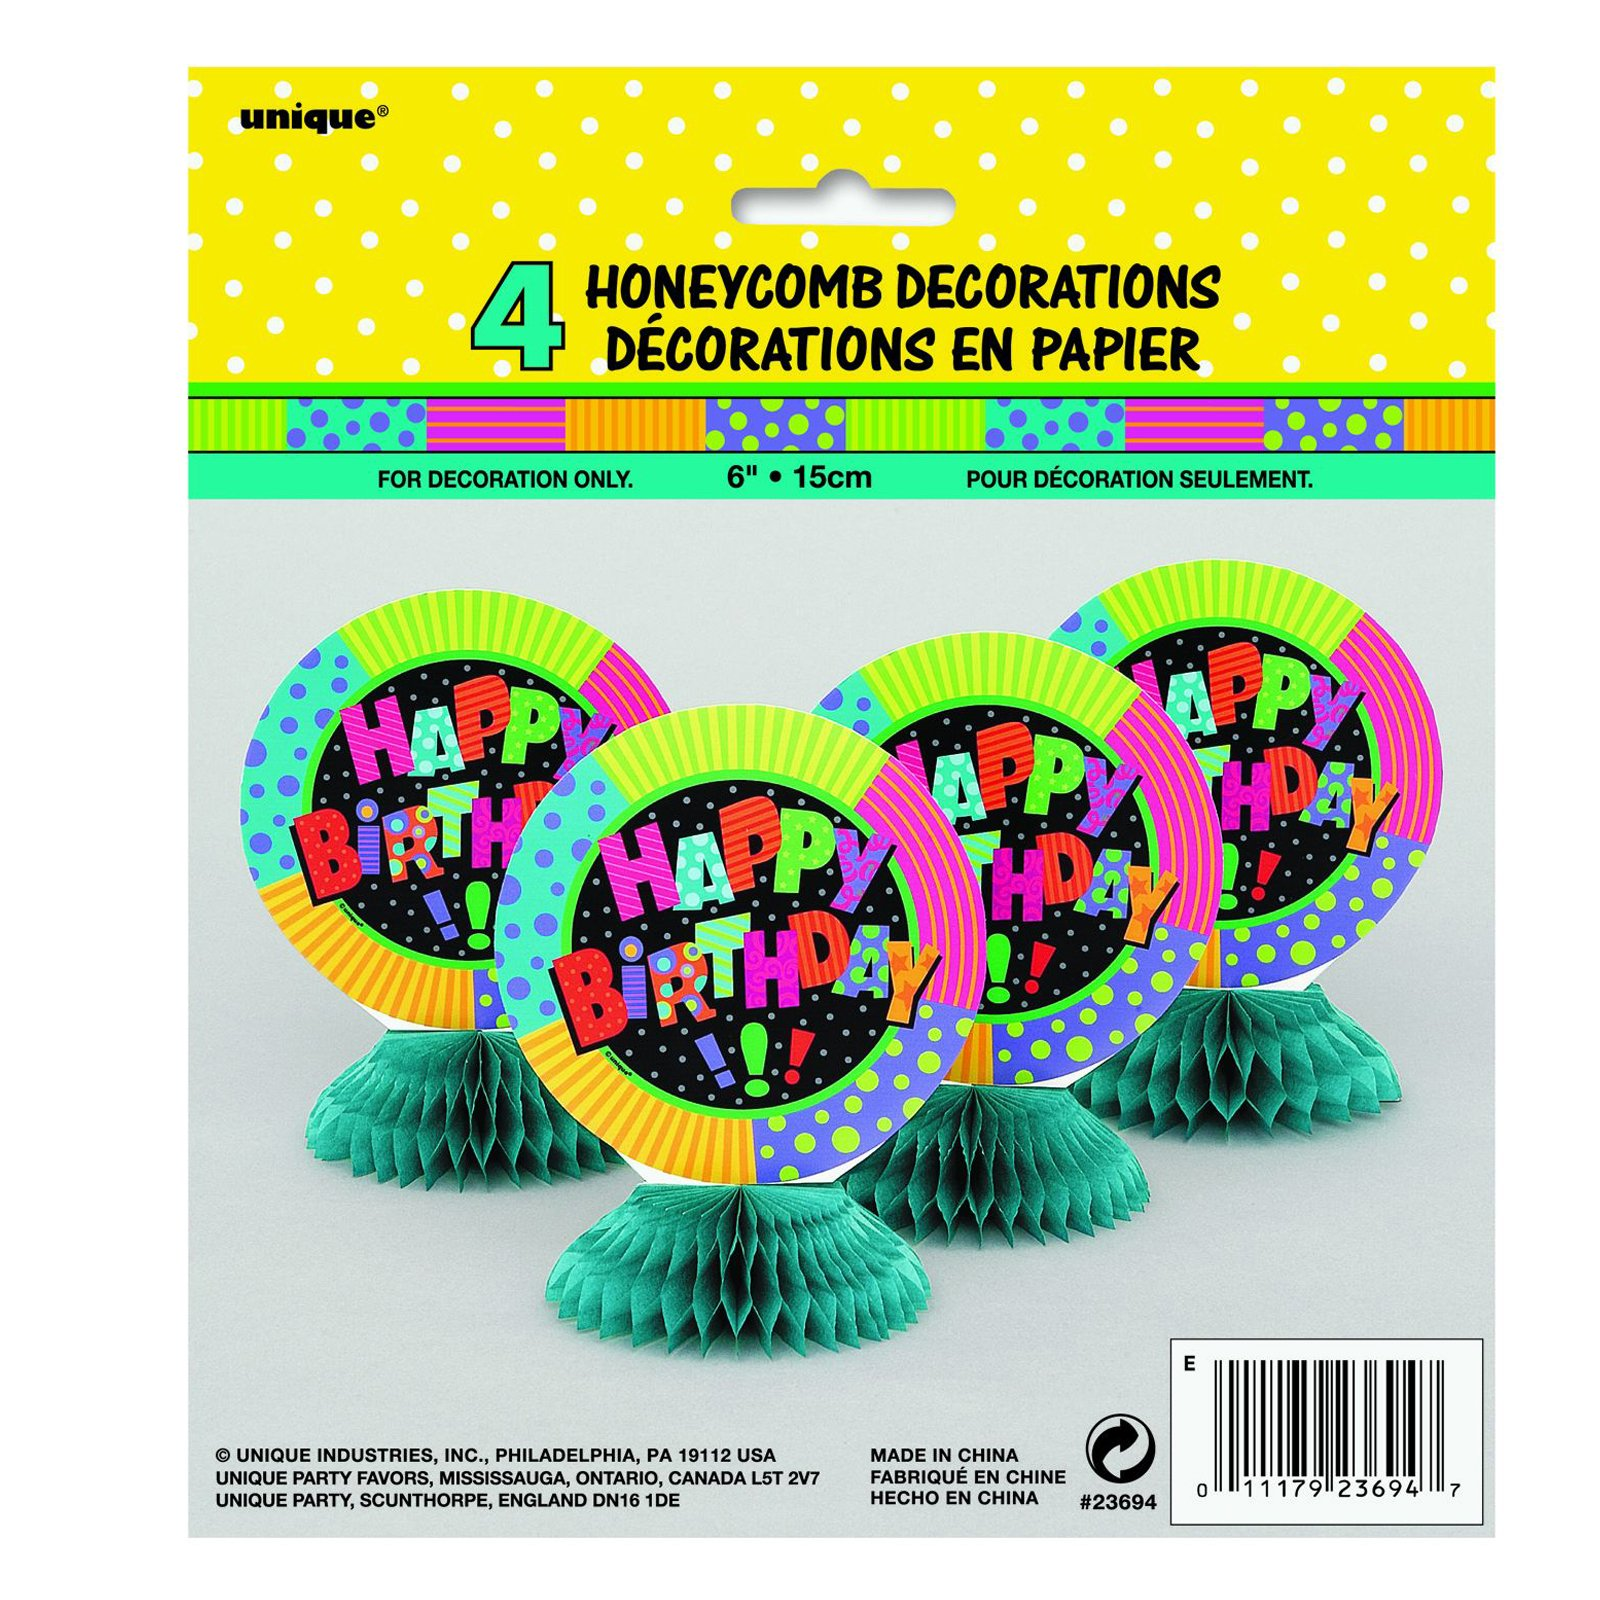 Infinite Birthday Honeycomb Decorations (4 count)